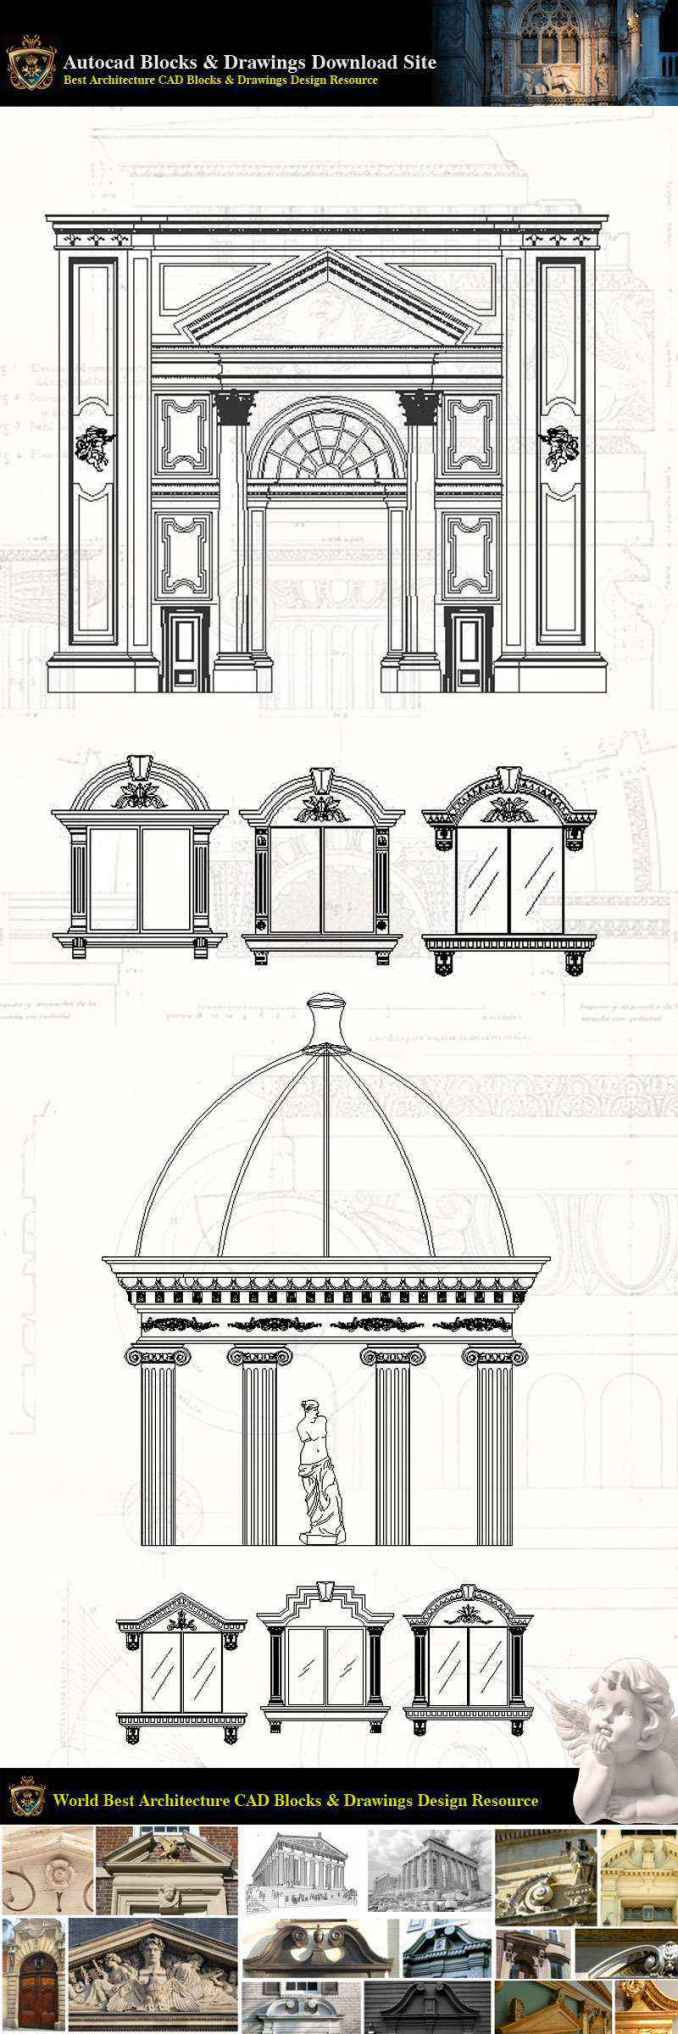 ★【Neoclassical Style Decor CAD Design Elements V 3】Neoclassical interior,  Home decor,Traditional home decorating,Decoration